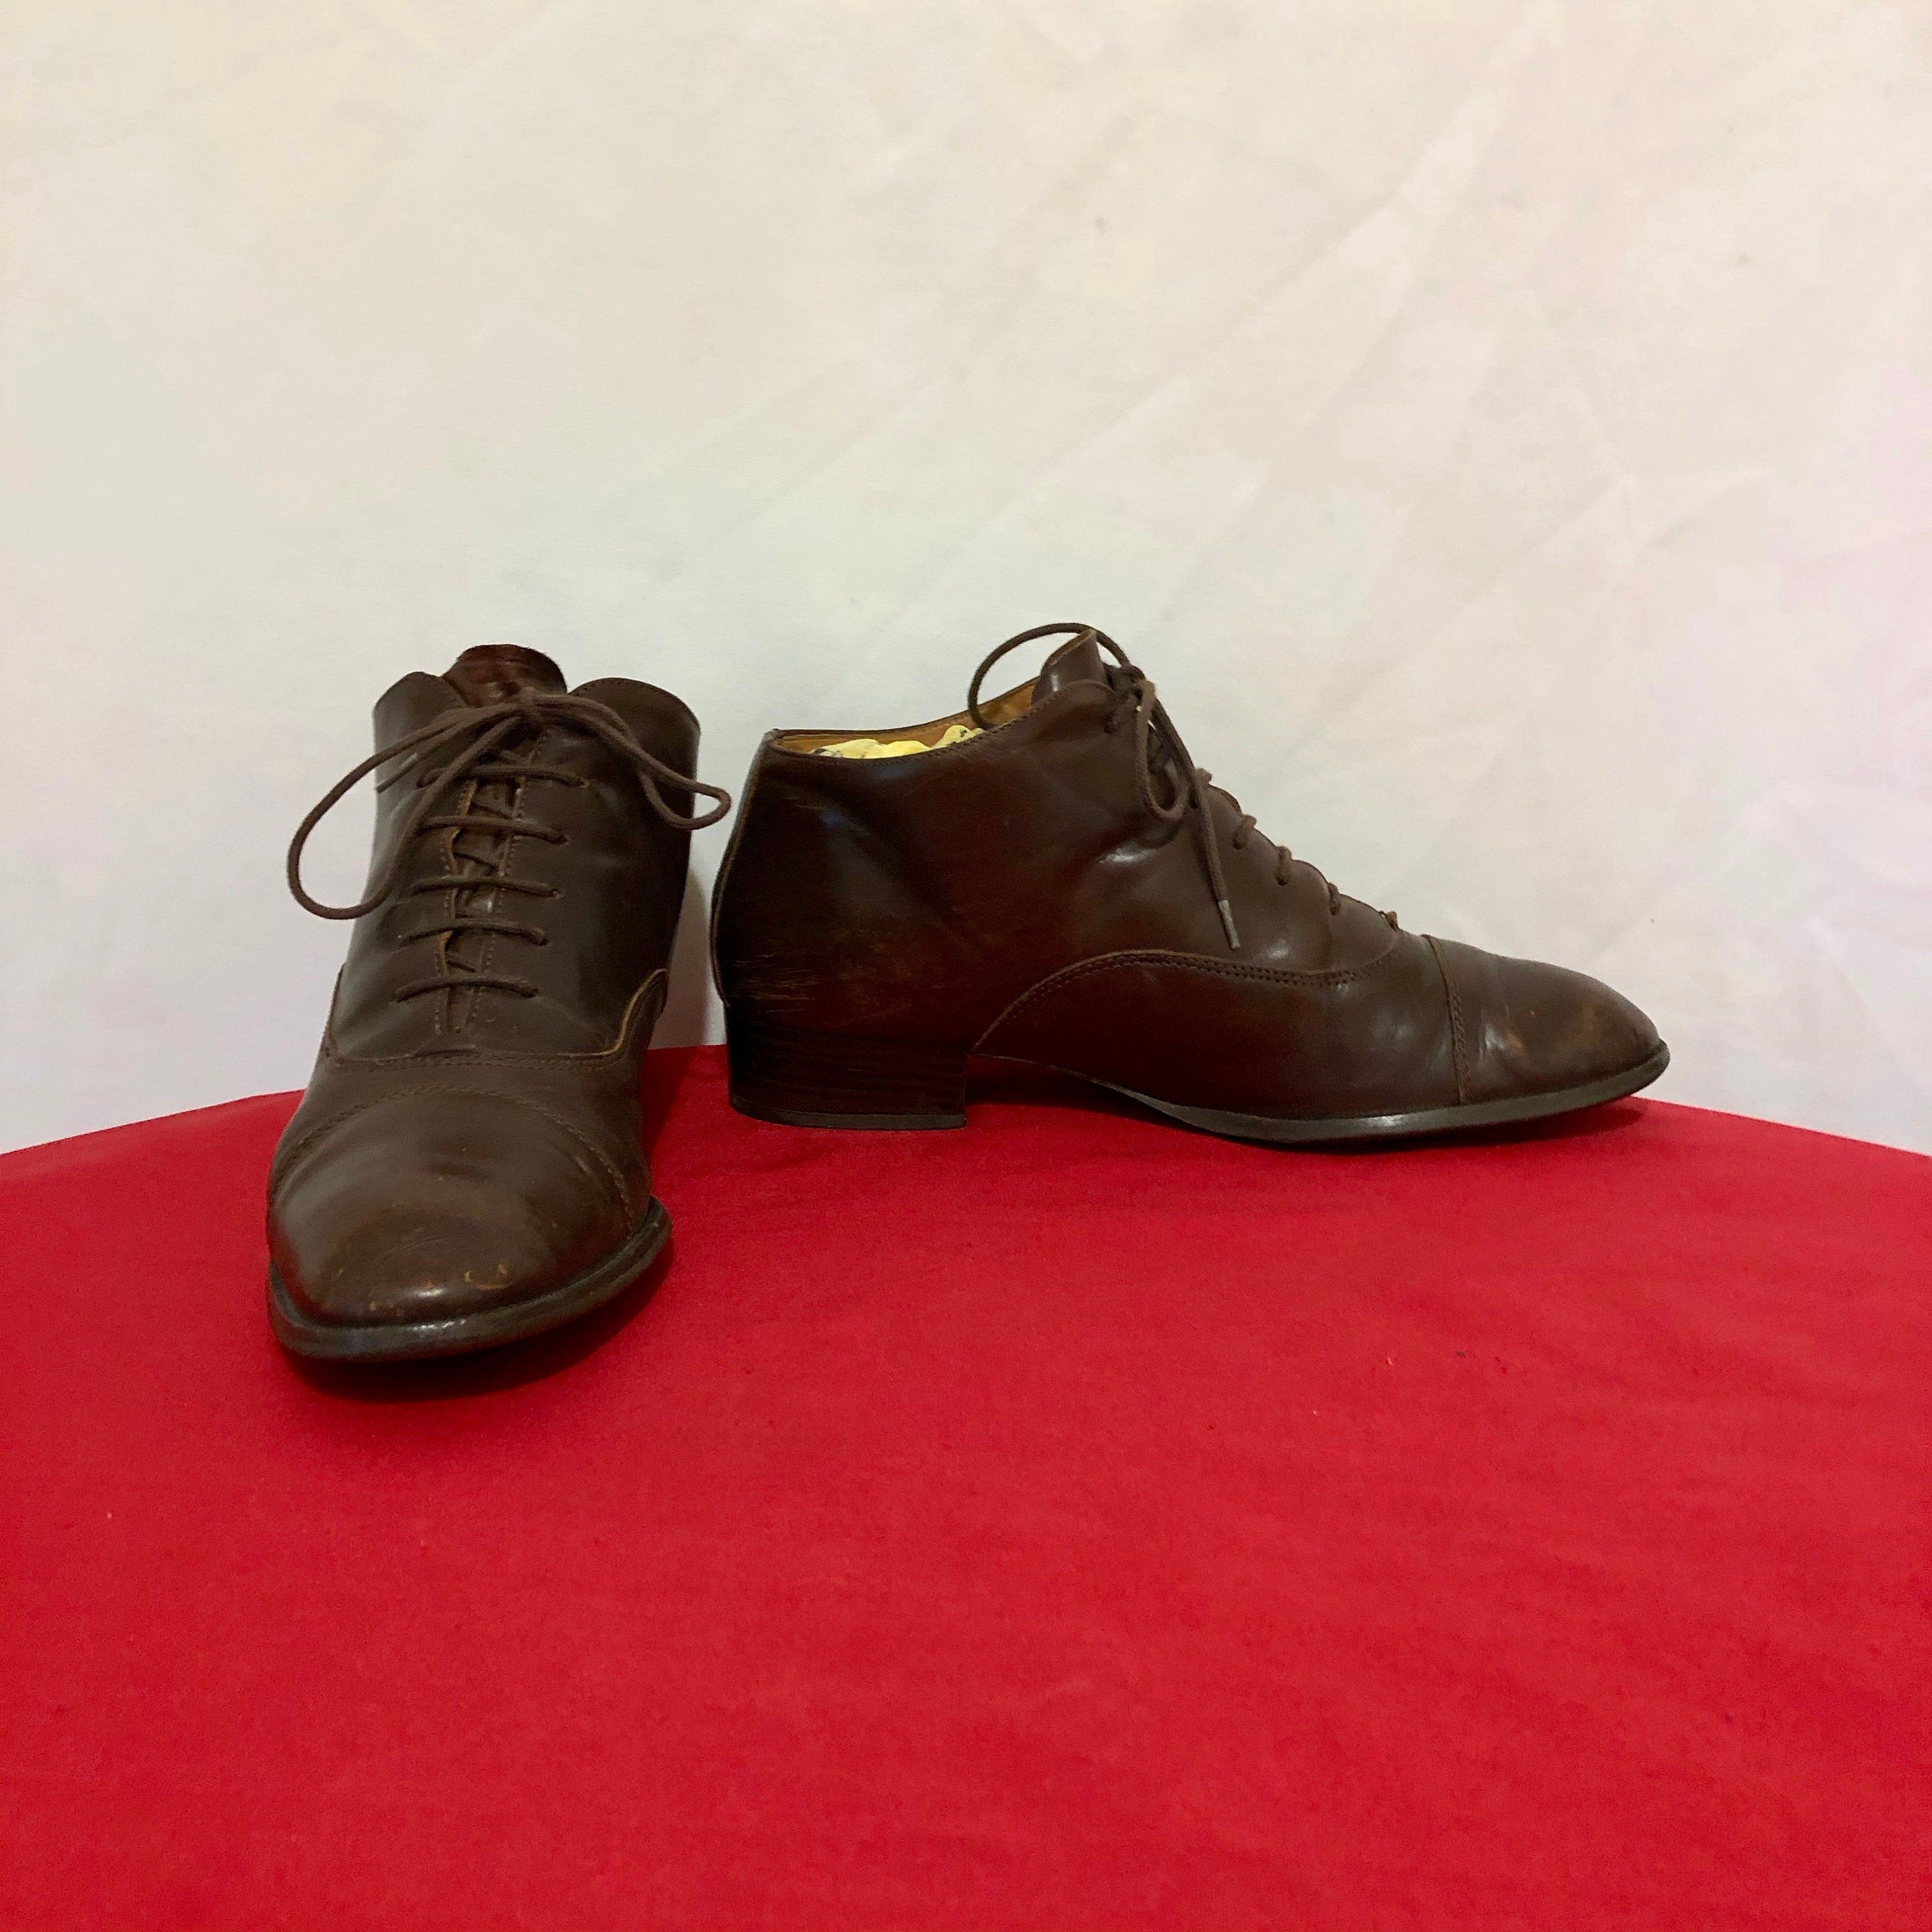 Size 8M Short Brown Genuine Leather 1980s Women Flat Lace Up Hiking Boots. Vintage Boots